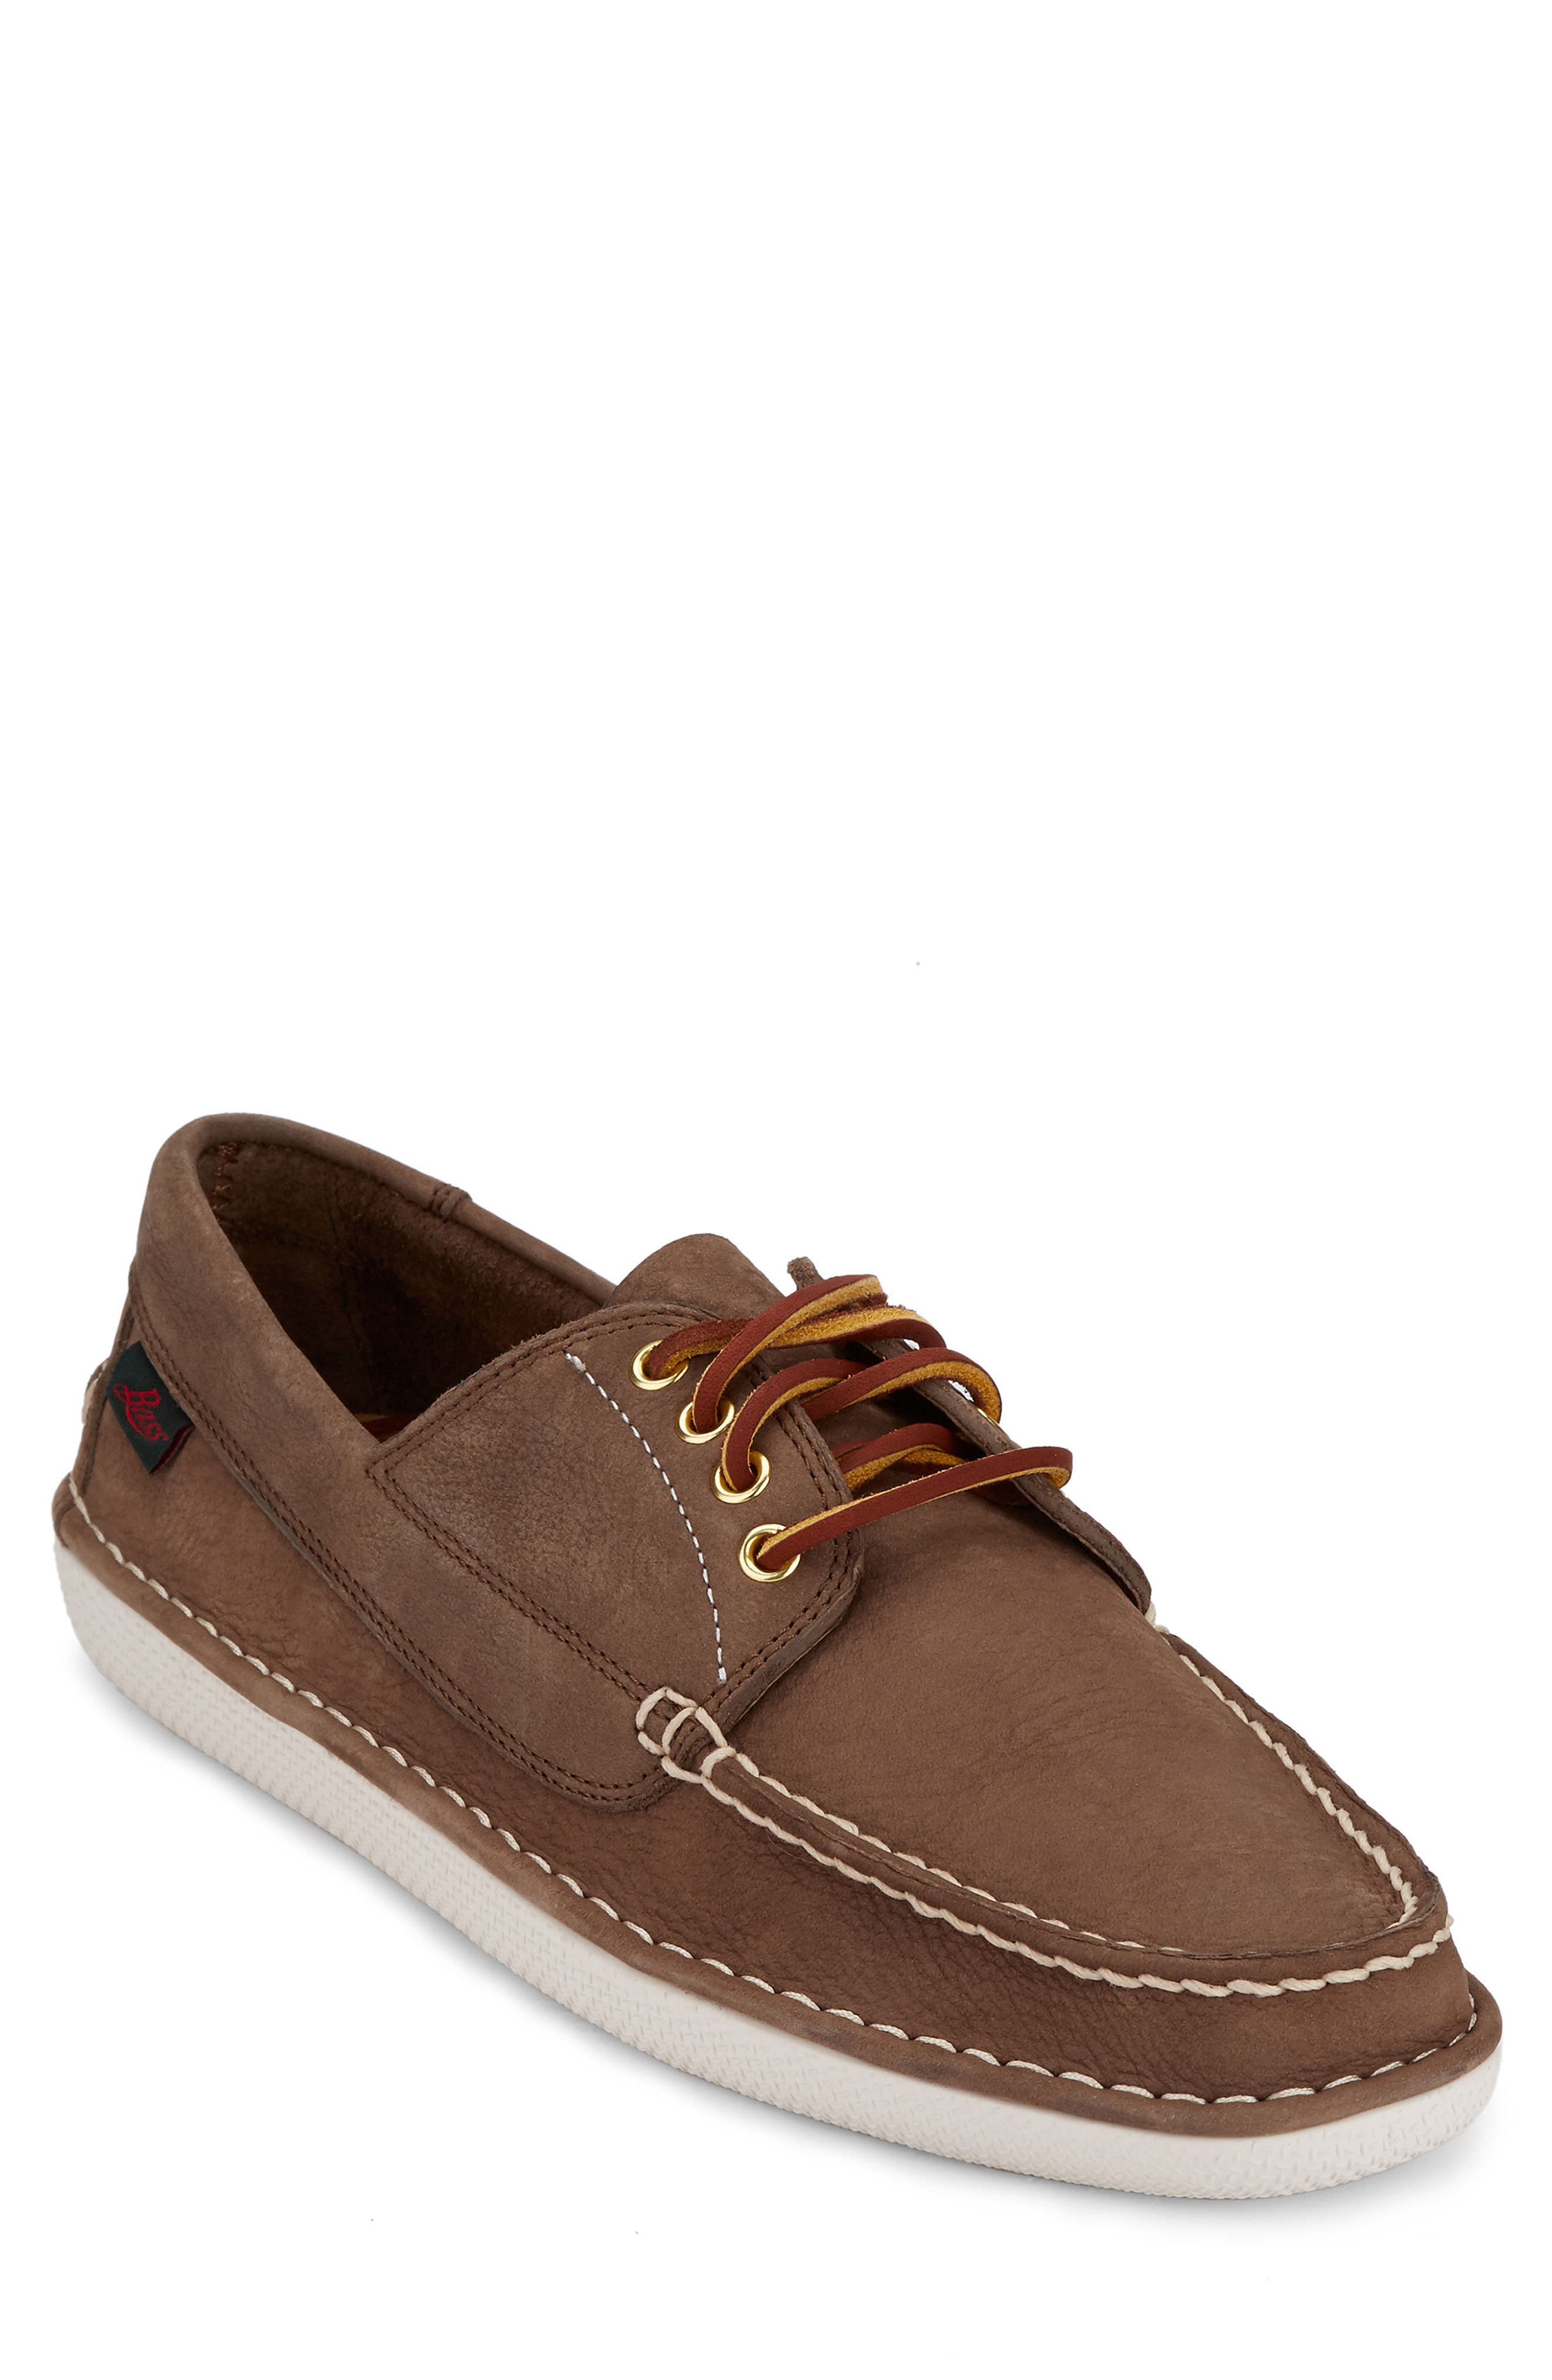 G.H. Bass & Co. Whitford Boat Shoe (Men)